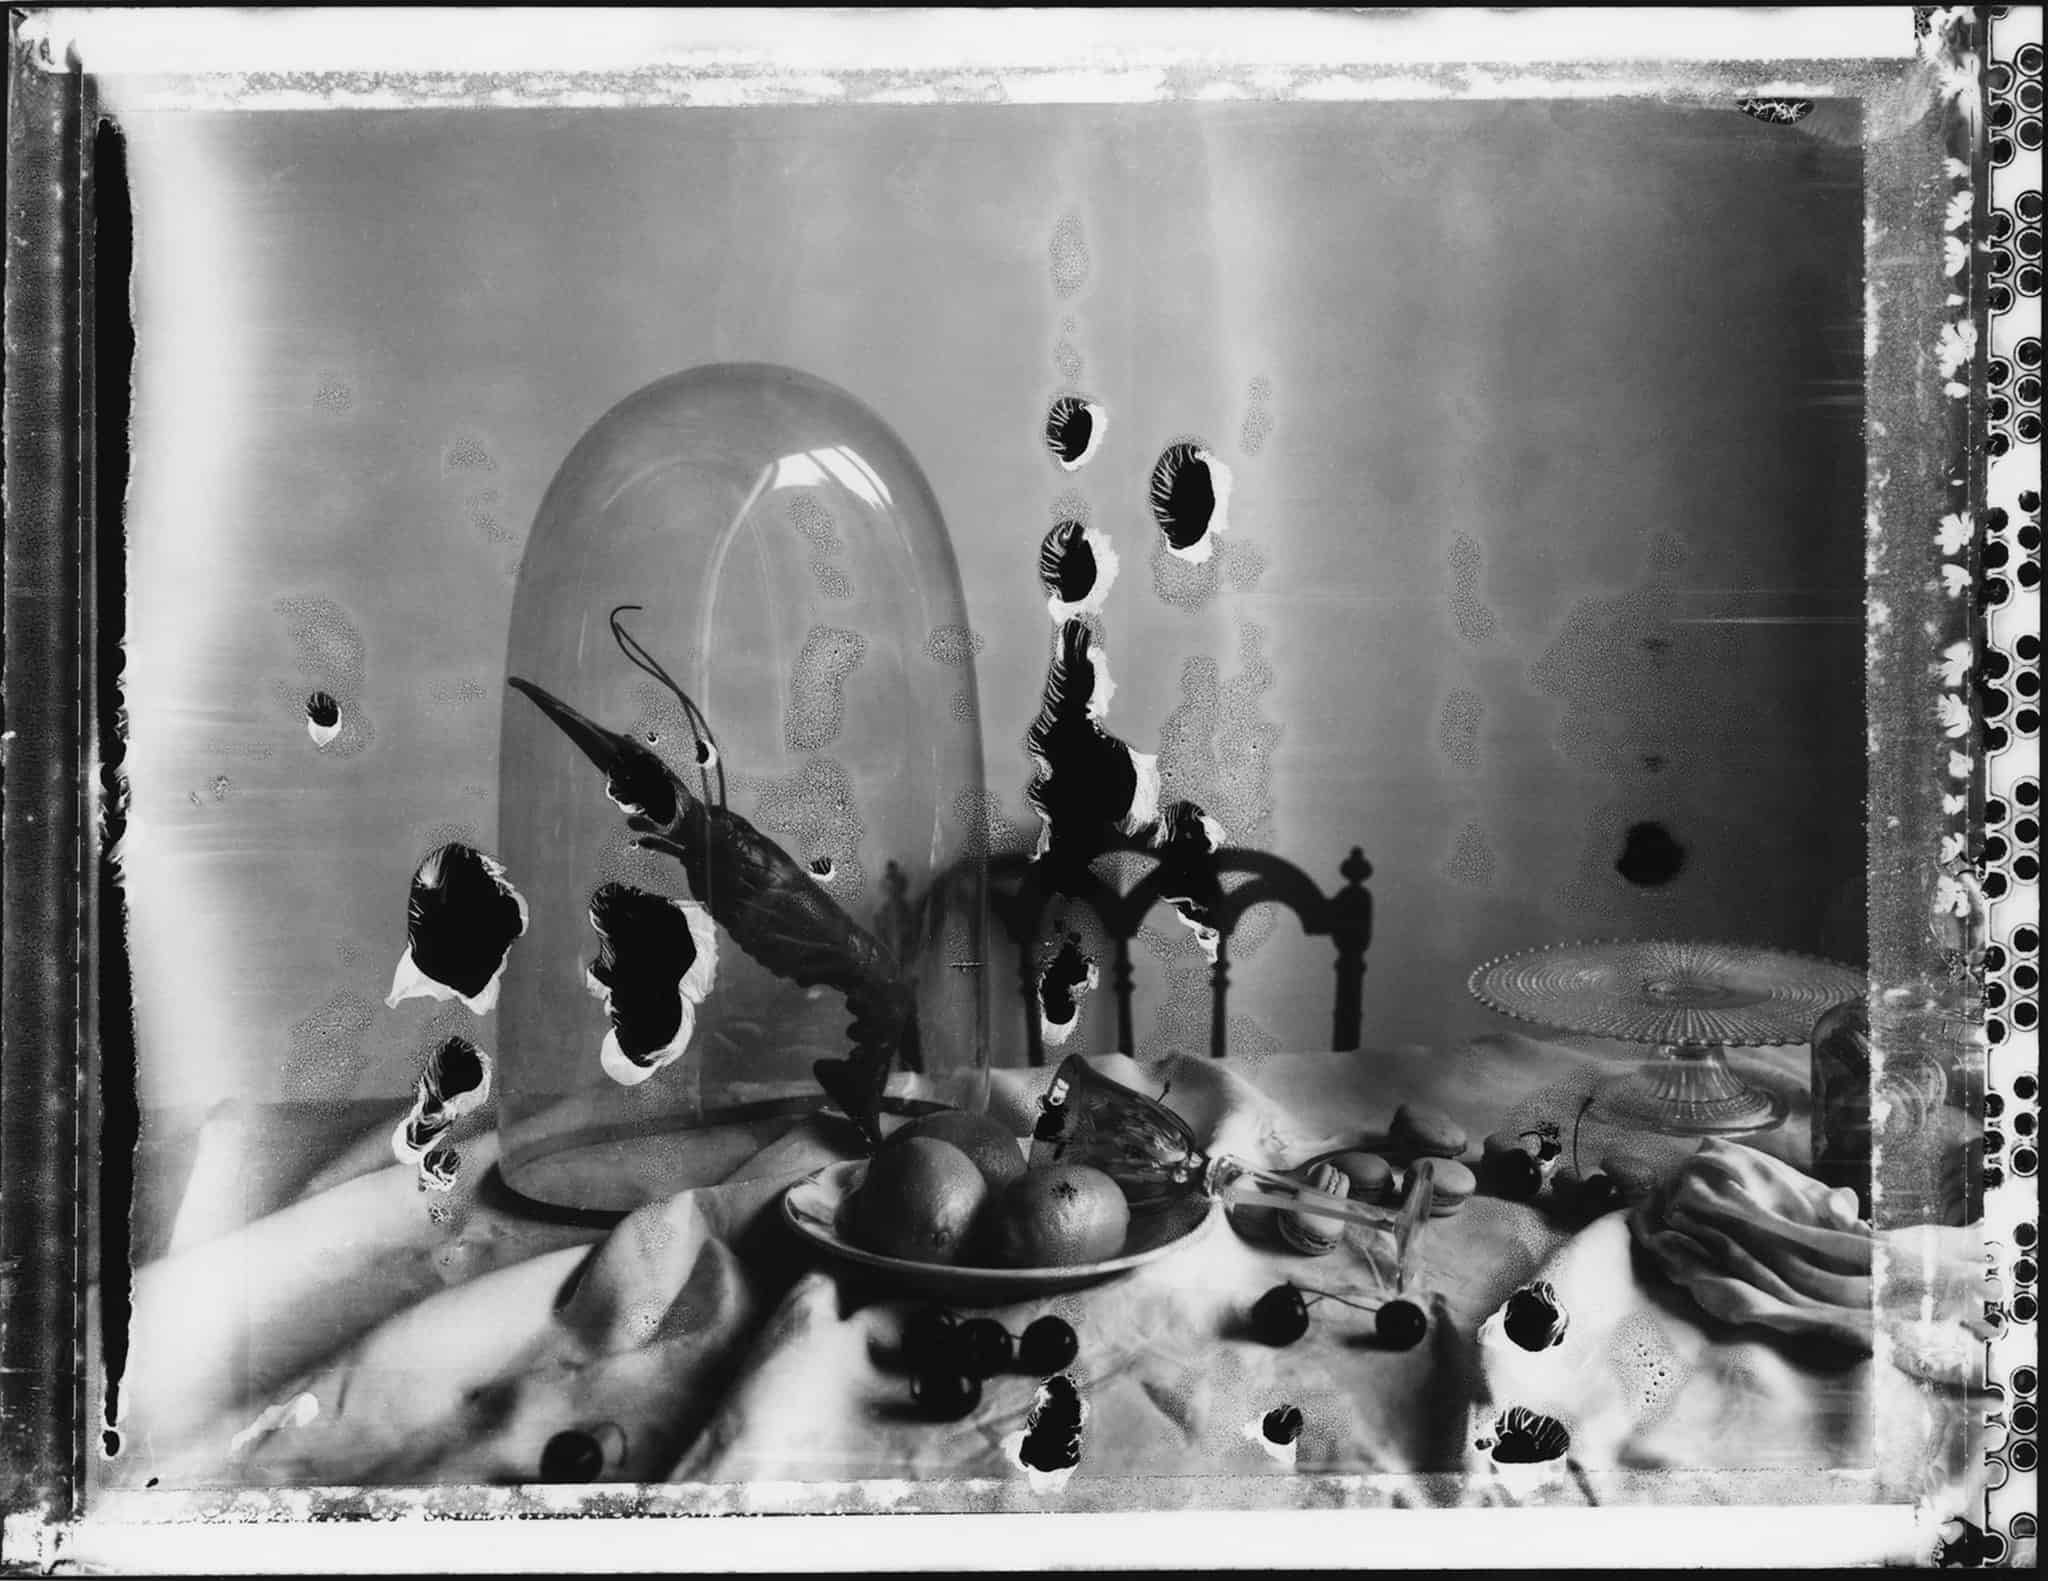 Fin art b/w photography of a still life with lobster and citrons and cherries.